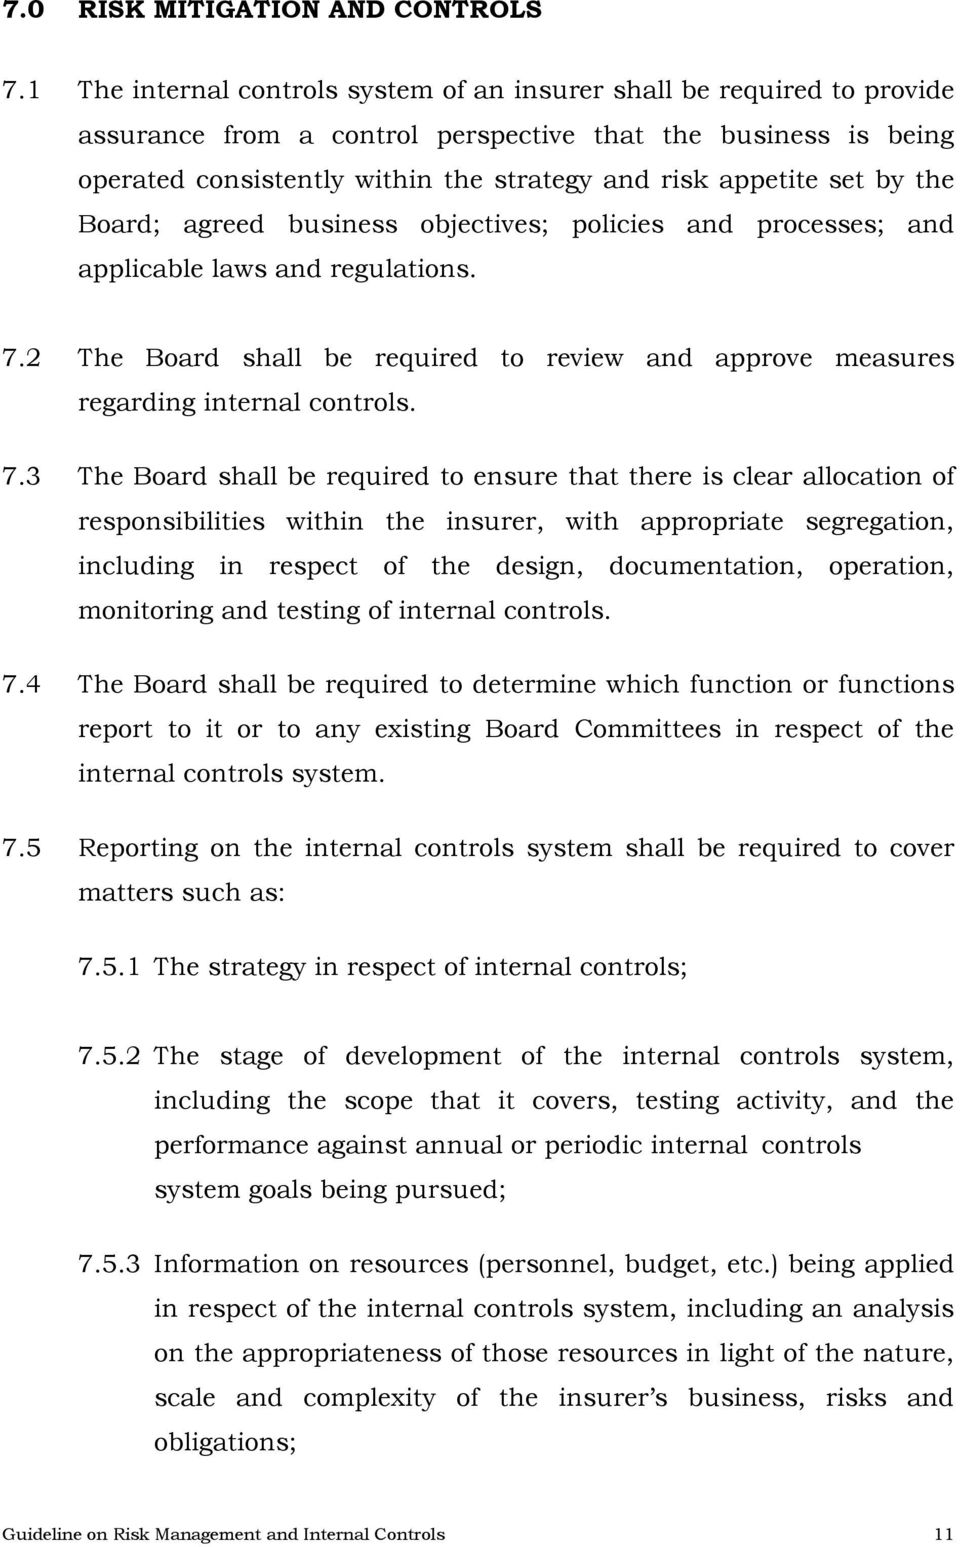 set by the Board; agreed business objectives; policies and processes; and applicable laws and regulations. 7.2 The Board shall be required to review and approve measures regarding internal controls.